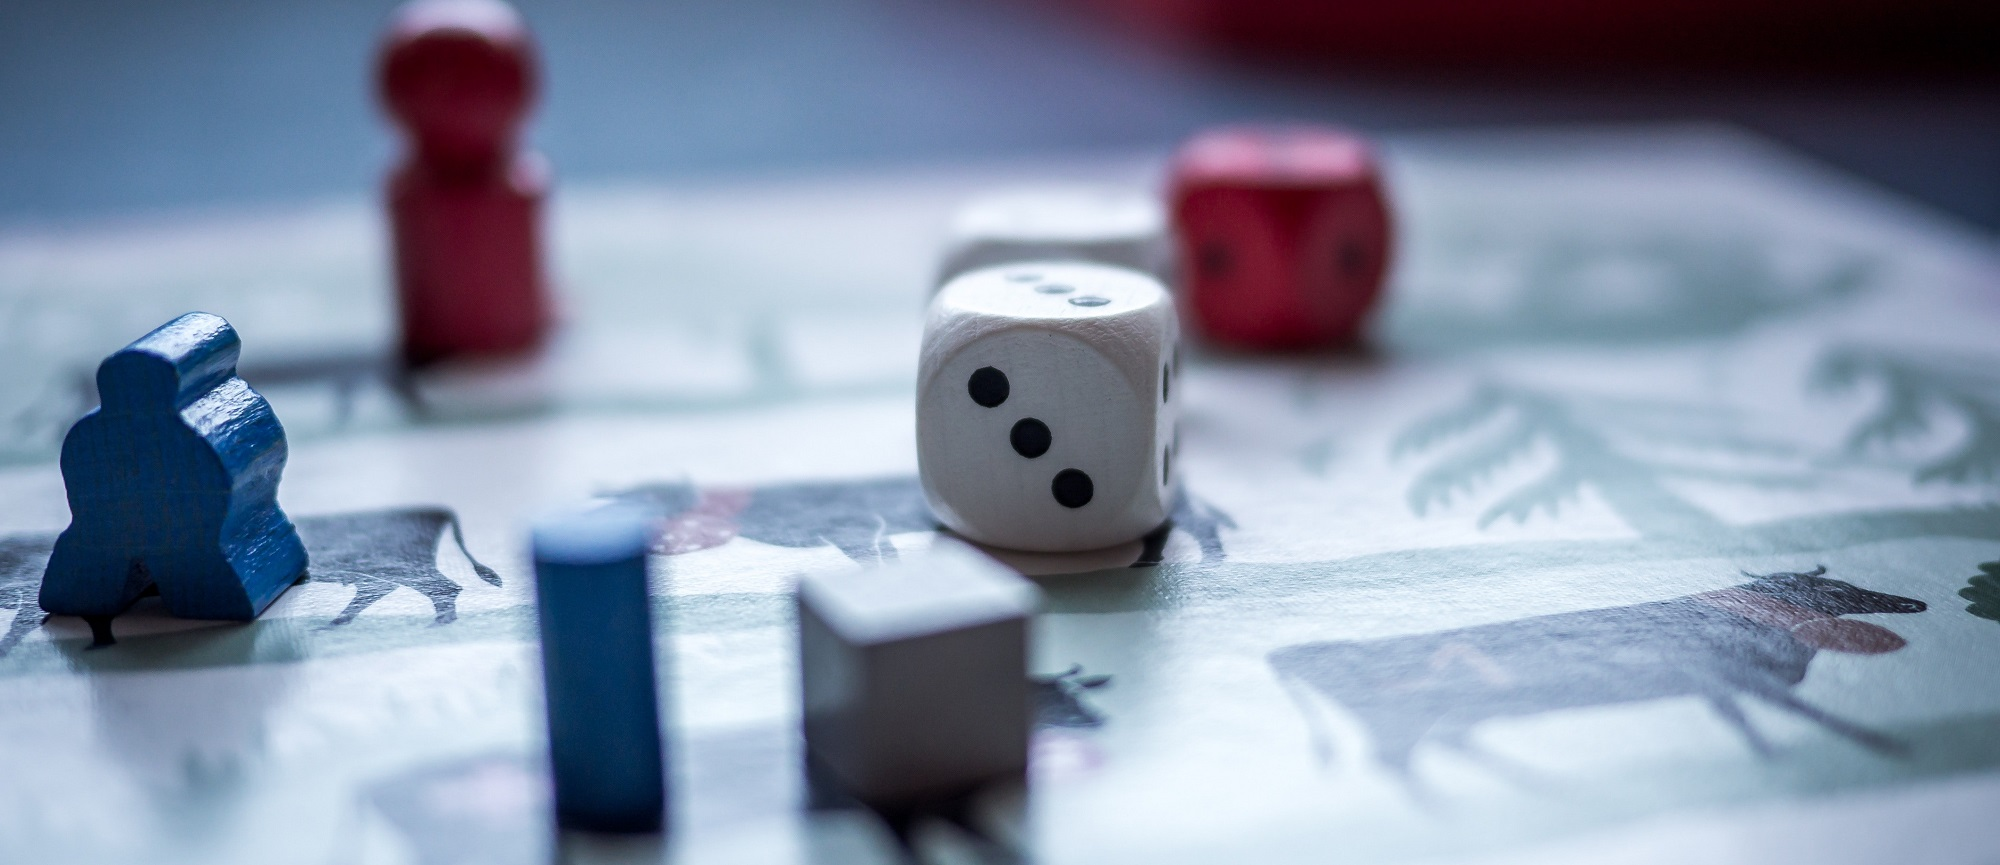 Updated: Game on: climate scientists develop heat decarbonisation table top game